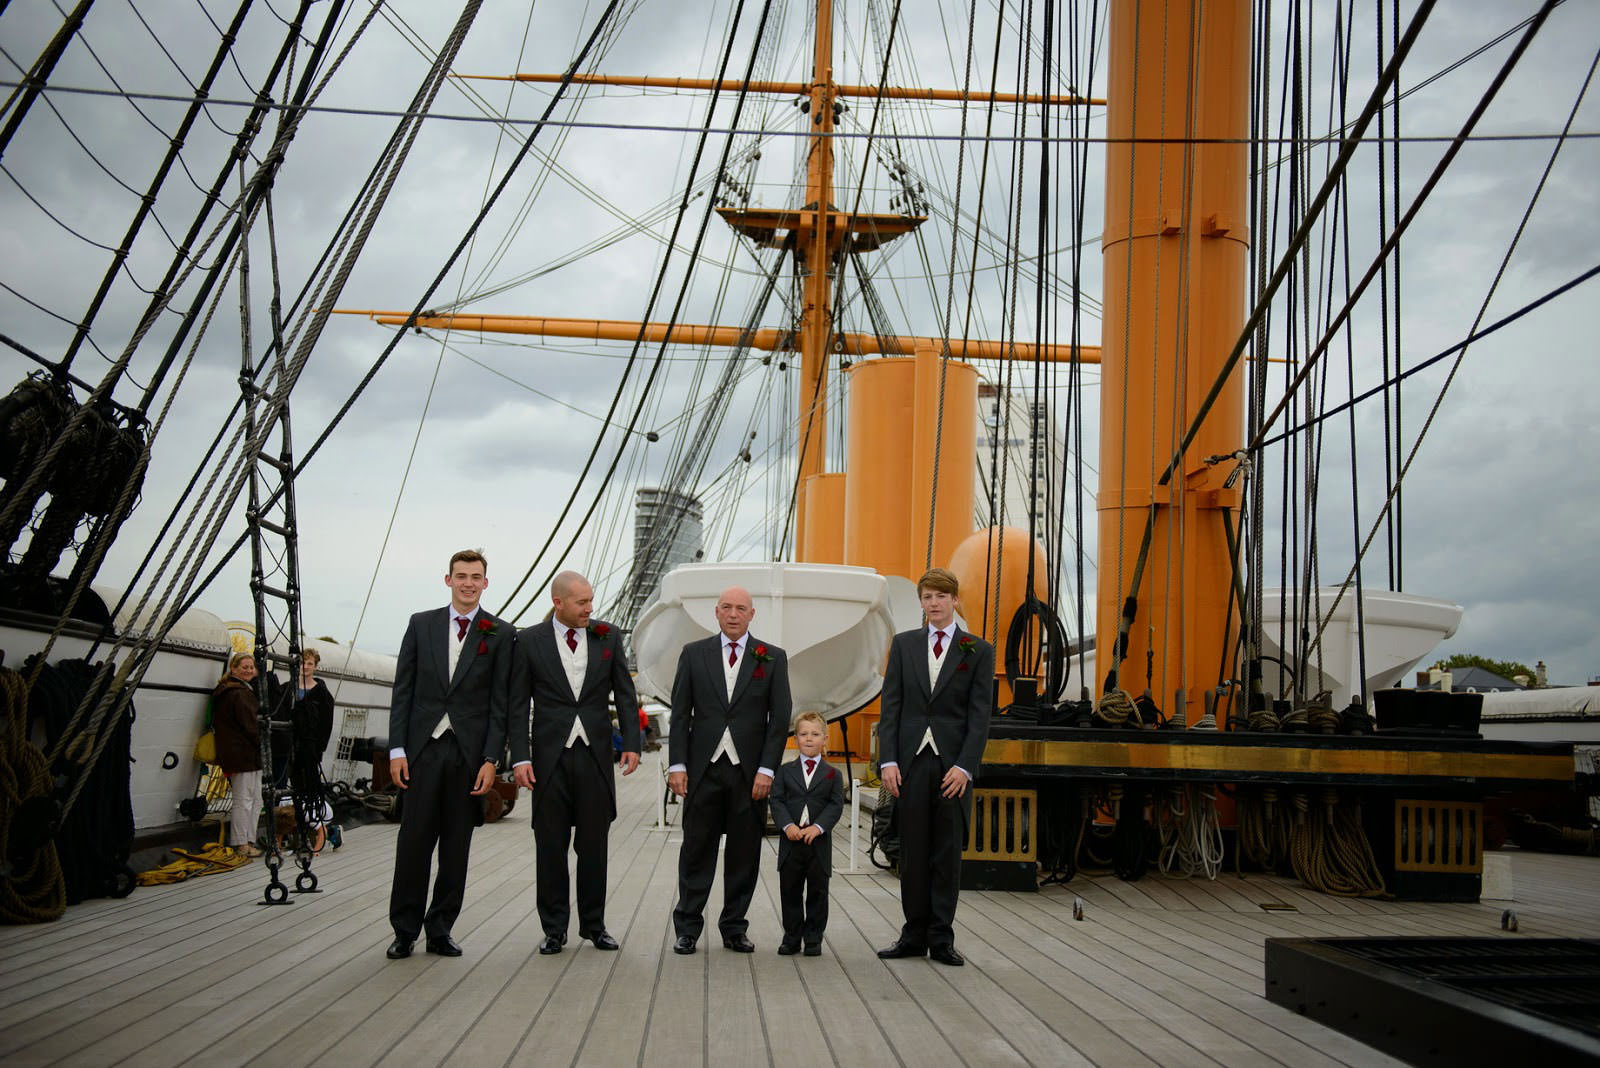 ali-gaudion-chichester-wedding-photographer-hms-warrior-009